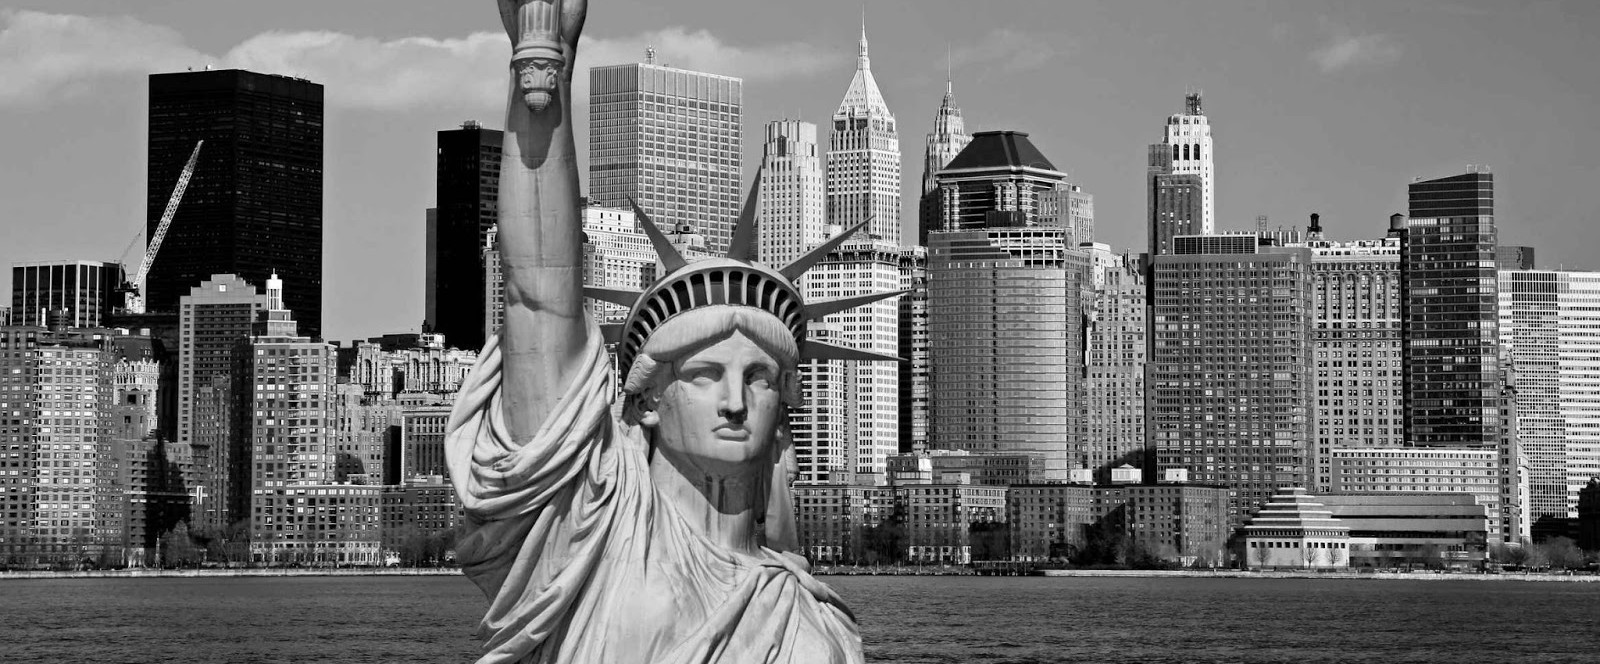 Statue-of-liberty-NYC-Black-and-white-photography-12-e1385008042753